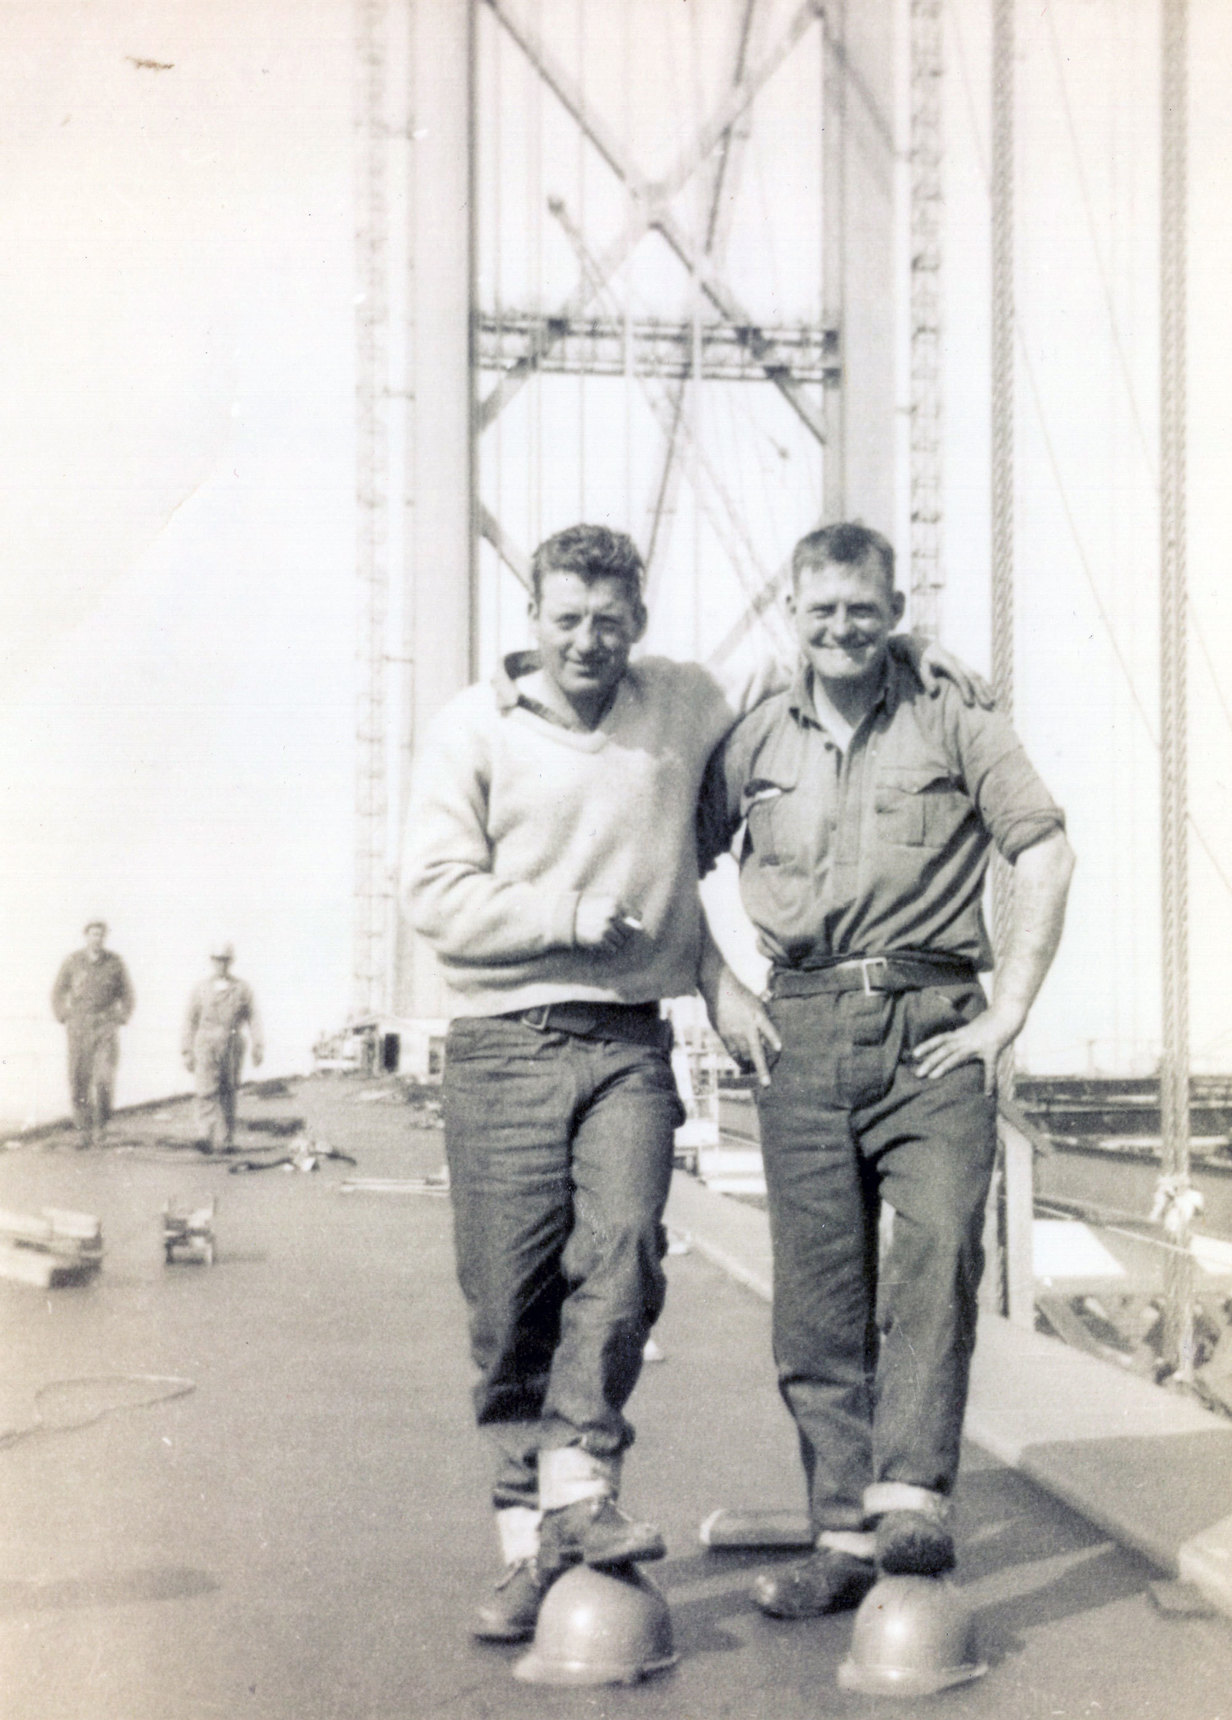 Two Construction Workers Of The Forth Road Bridge With A Foot Each On Their Hard Hats c.1964